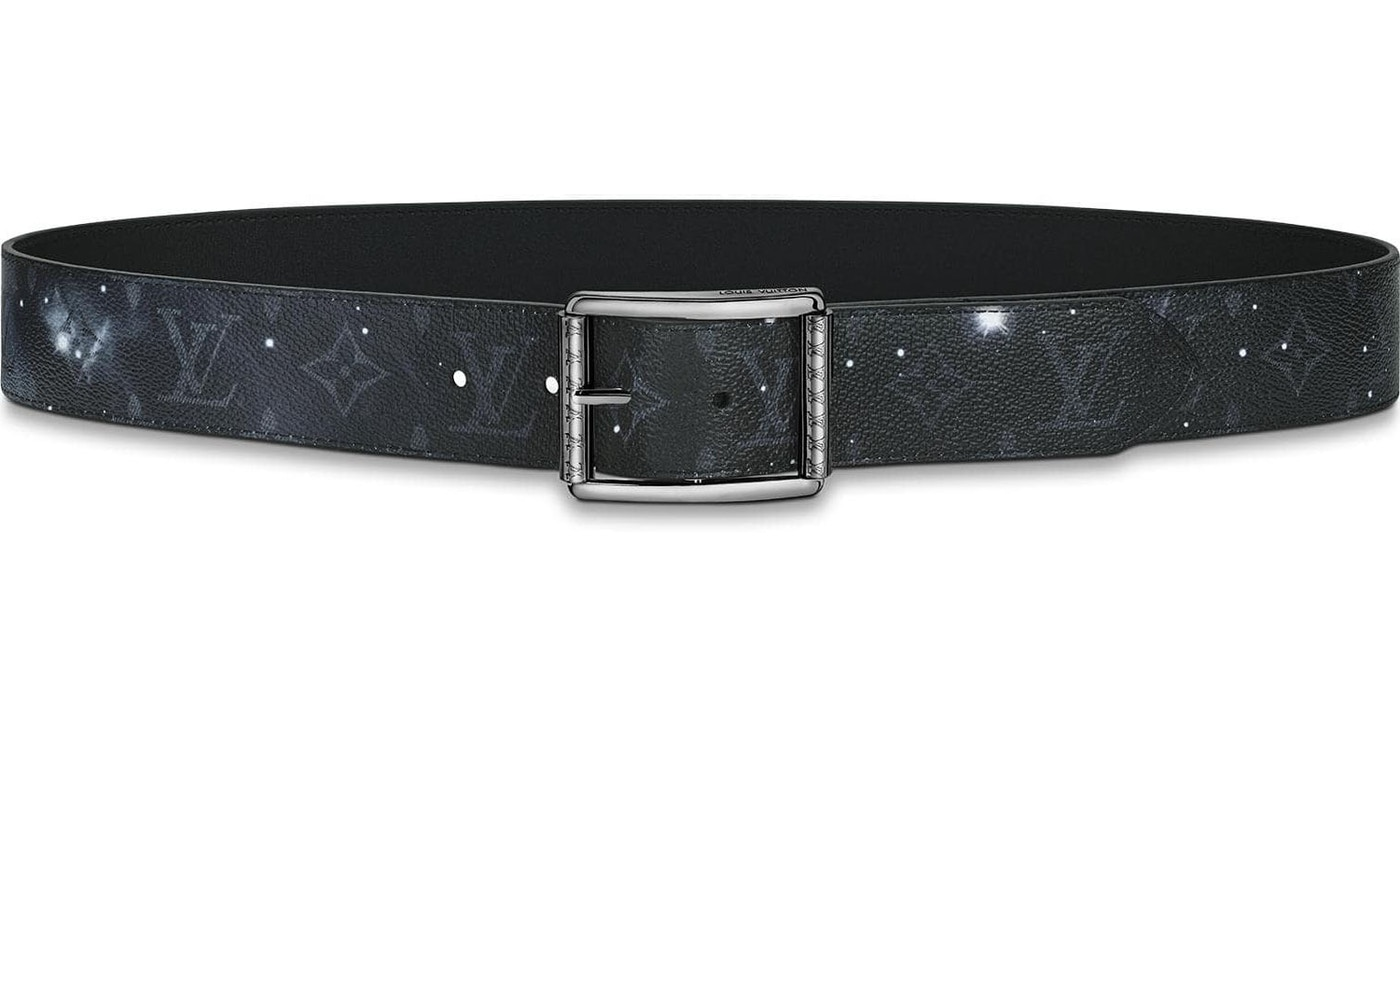 c4acecfd647d Louis Vuitton Belt Reverso Reversible Monogram Galaxy 40mm Black  Multicolor. Monogram Galaxy 40mm Black Multicolor